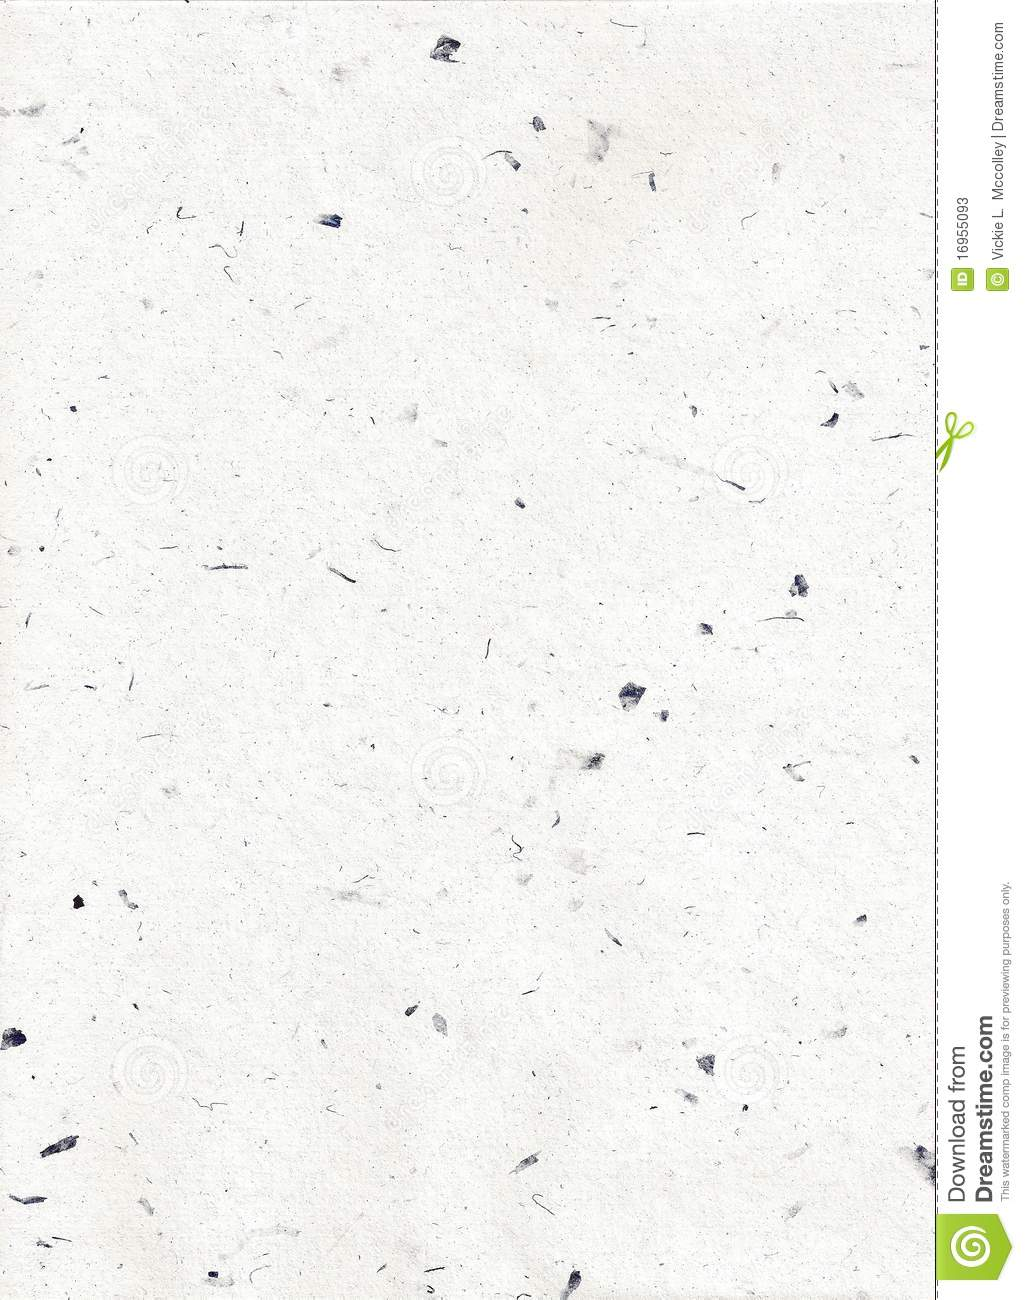 More similar stock images of   Flecks of Speckled Fiber Paper  White Speckled Background